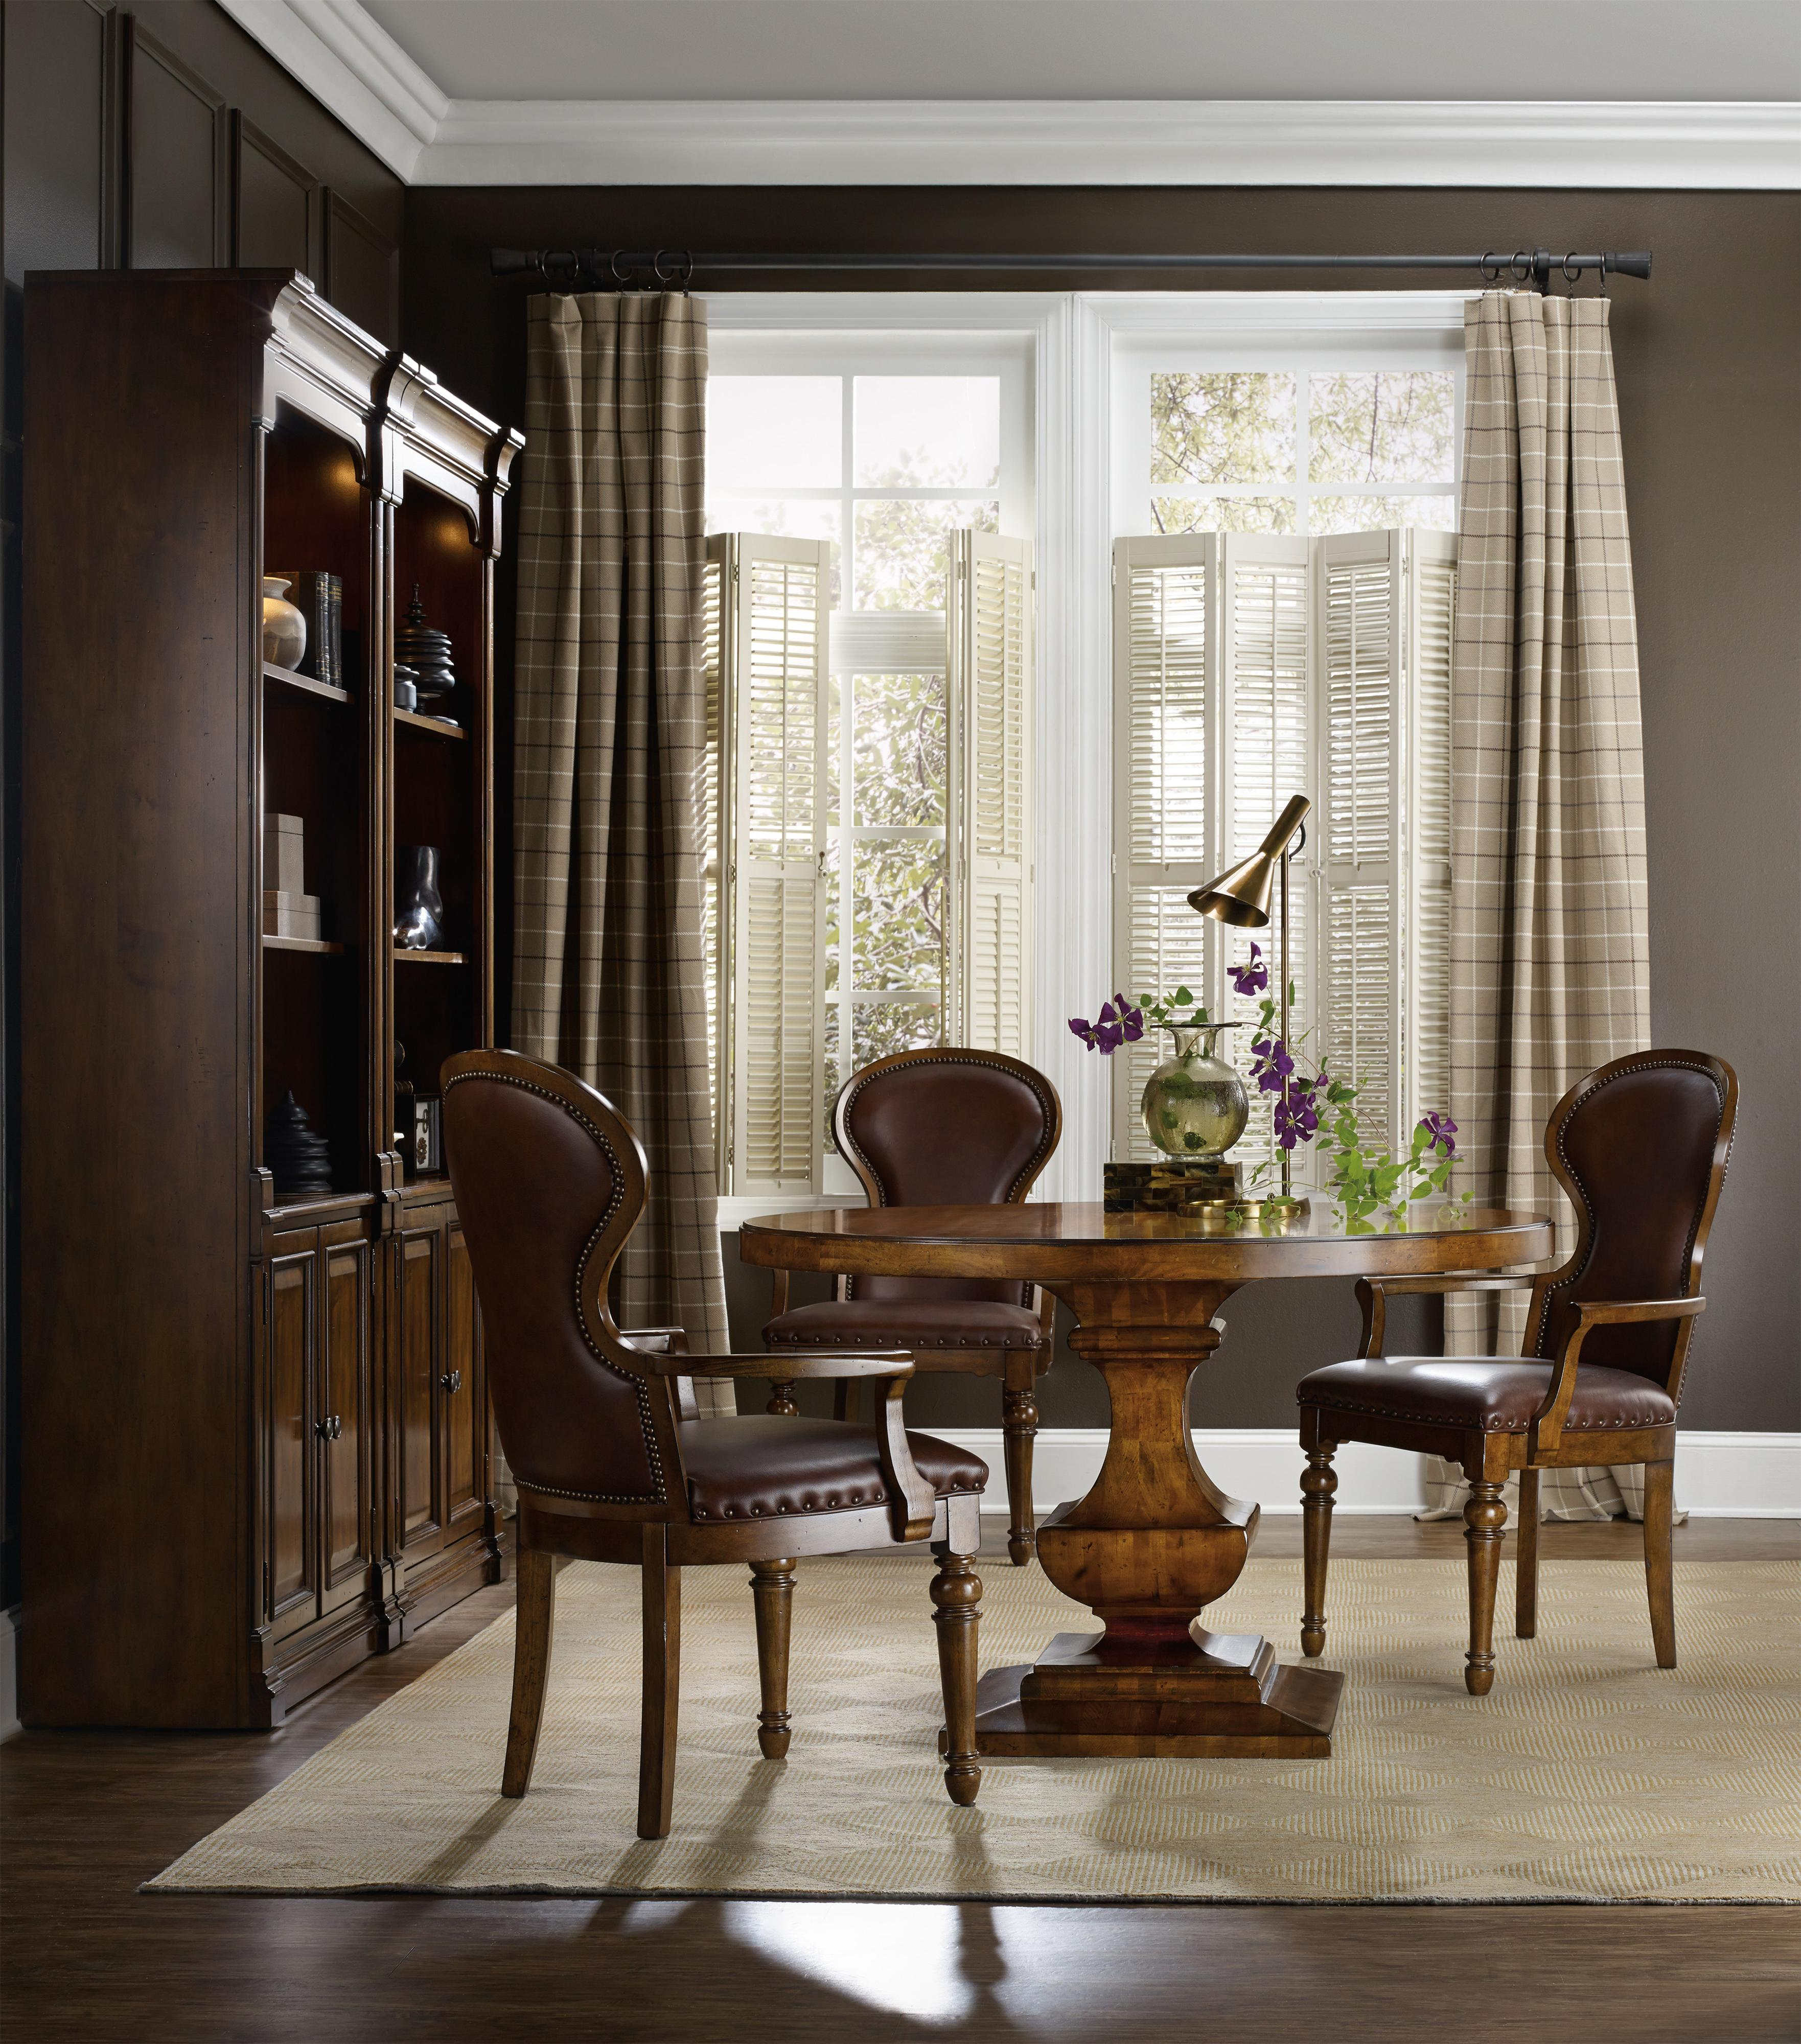 Hooker Furniture Tynecastle Formal Dining Room Group - Item Number: 5323 Dining Room Group 3